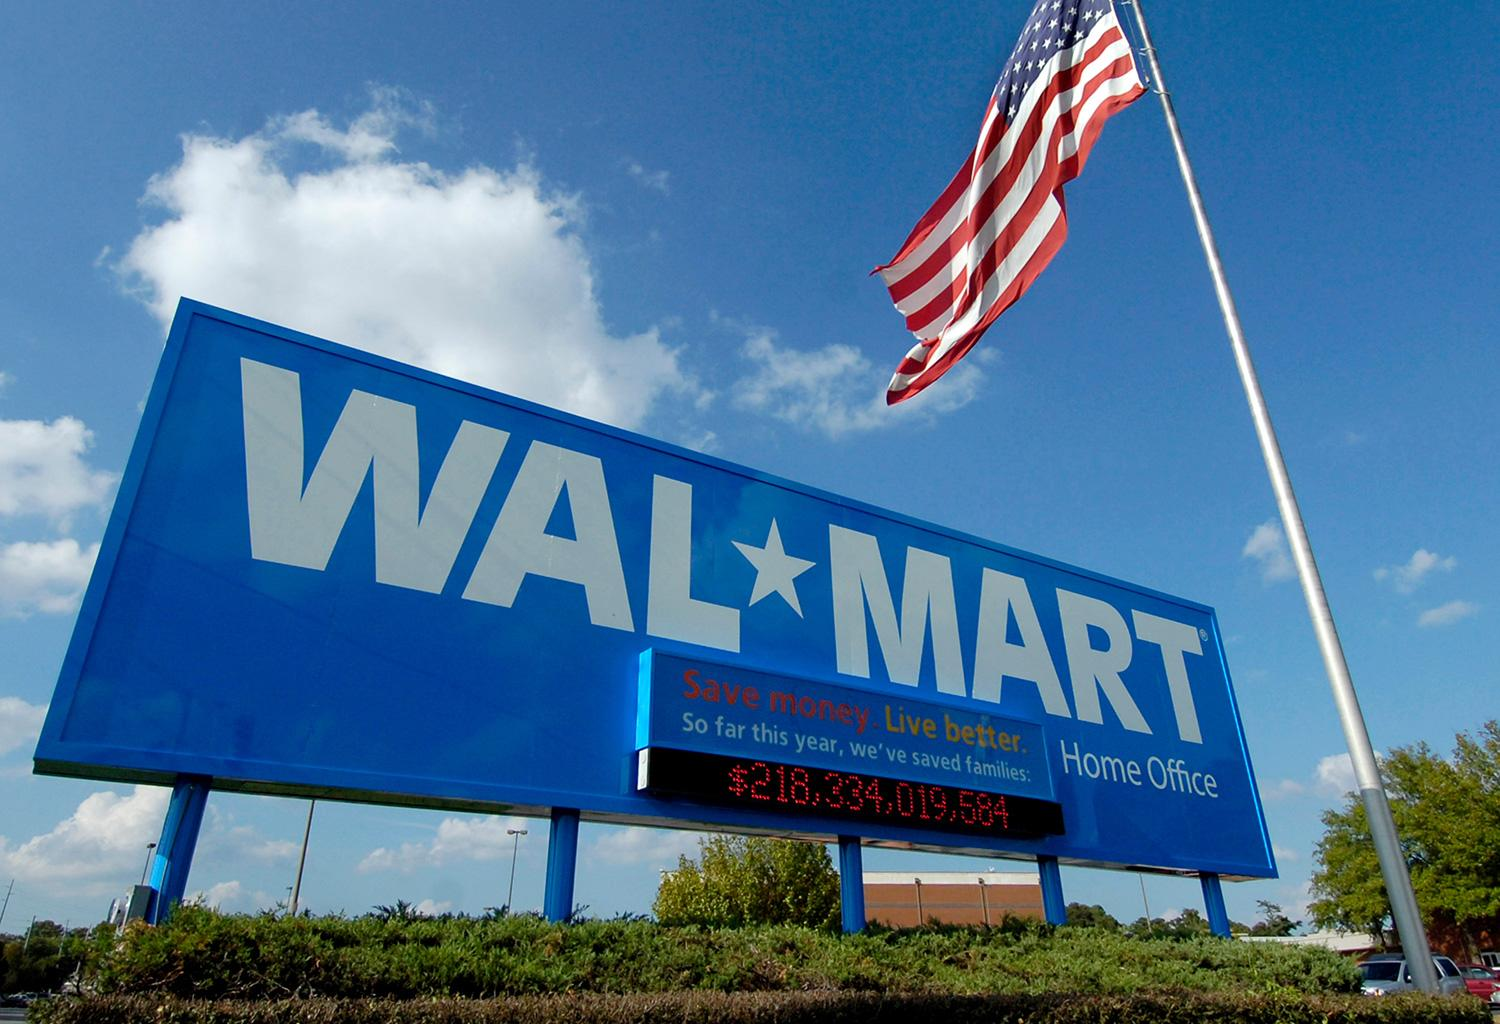 walmart just announced its cyber monday 2018 deals switch iphone and tv discounts. Black Bedroom Furniture Sets. Home Design Ideas